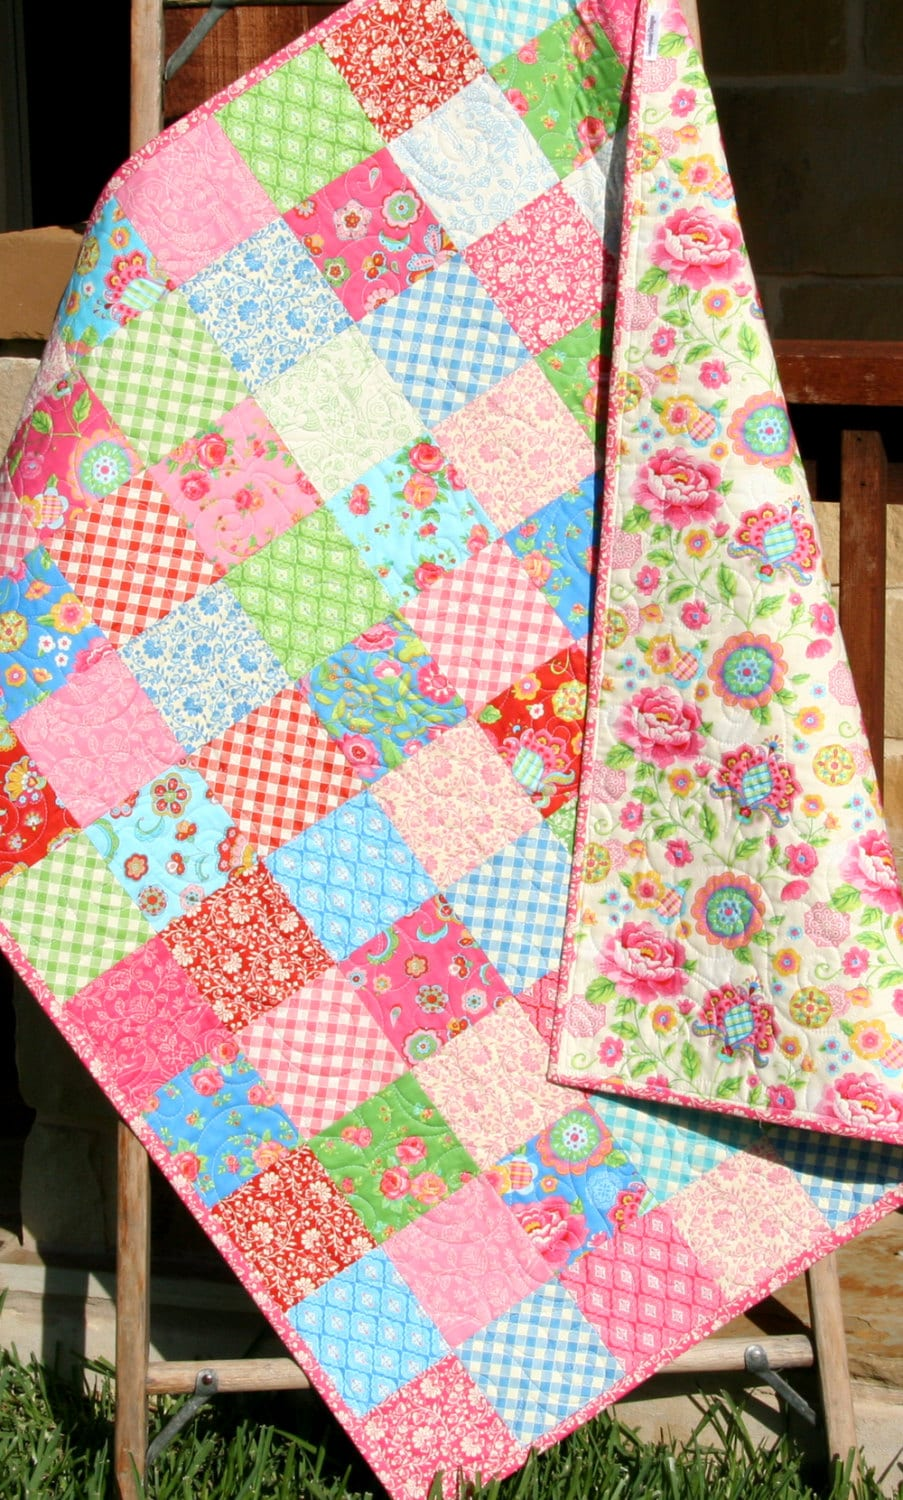 Gypsy Girl Baby Quilt Patchwork Pink Blue Girly Girl